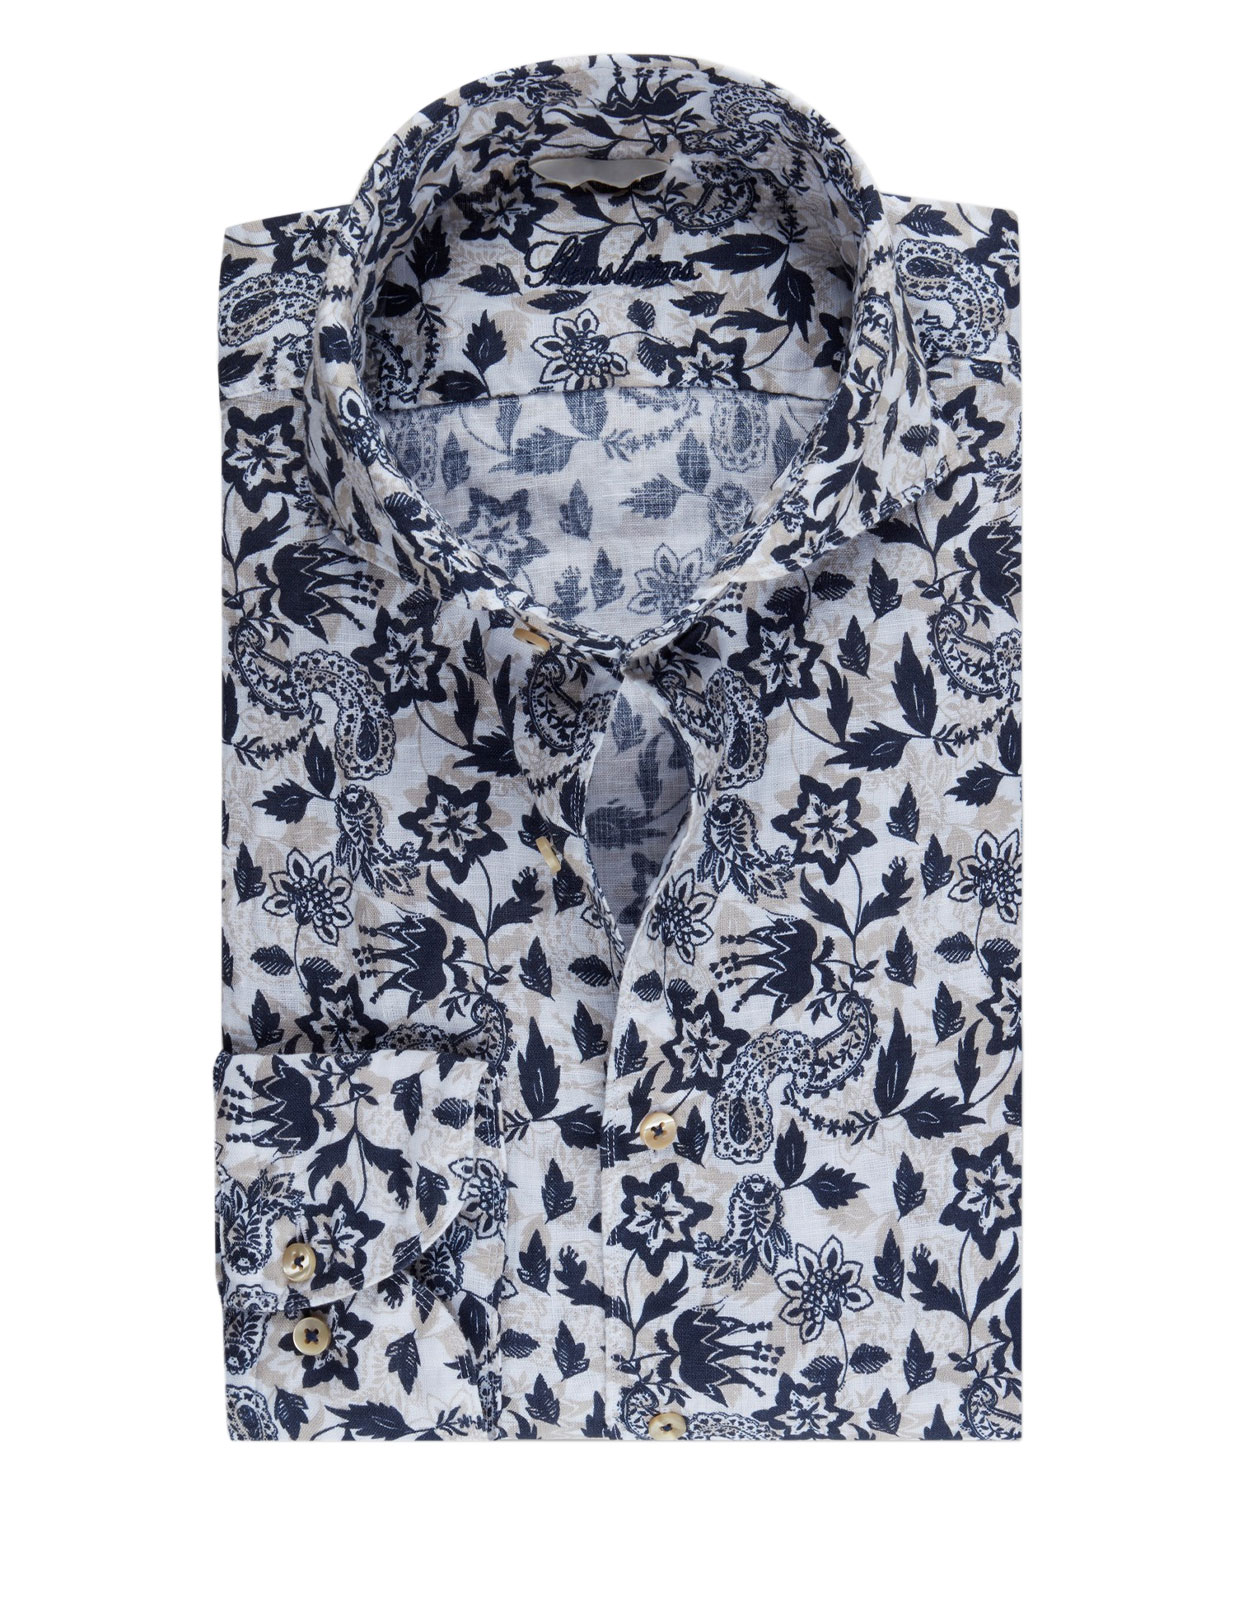 Fitted Body Shirt Flower Print Linen Blue/White